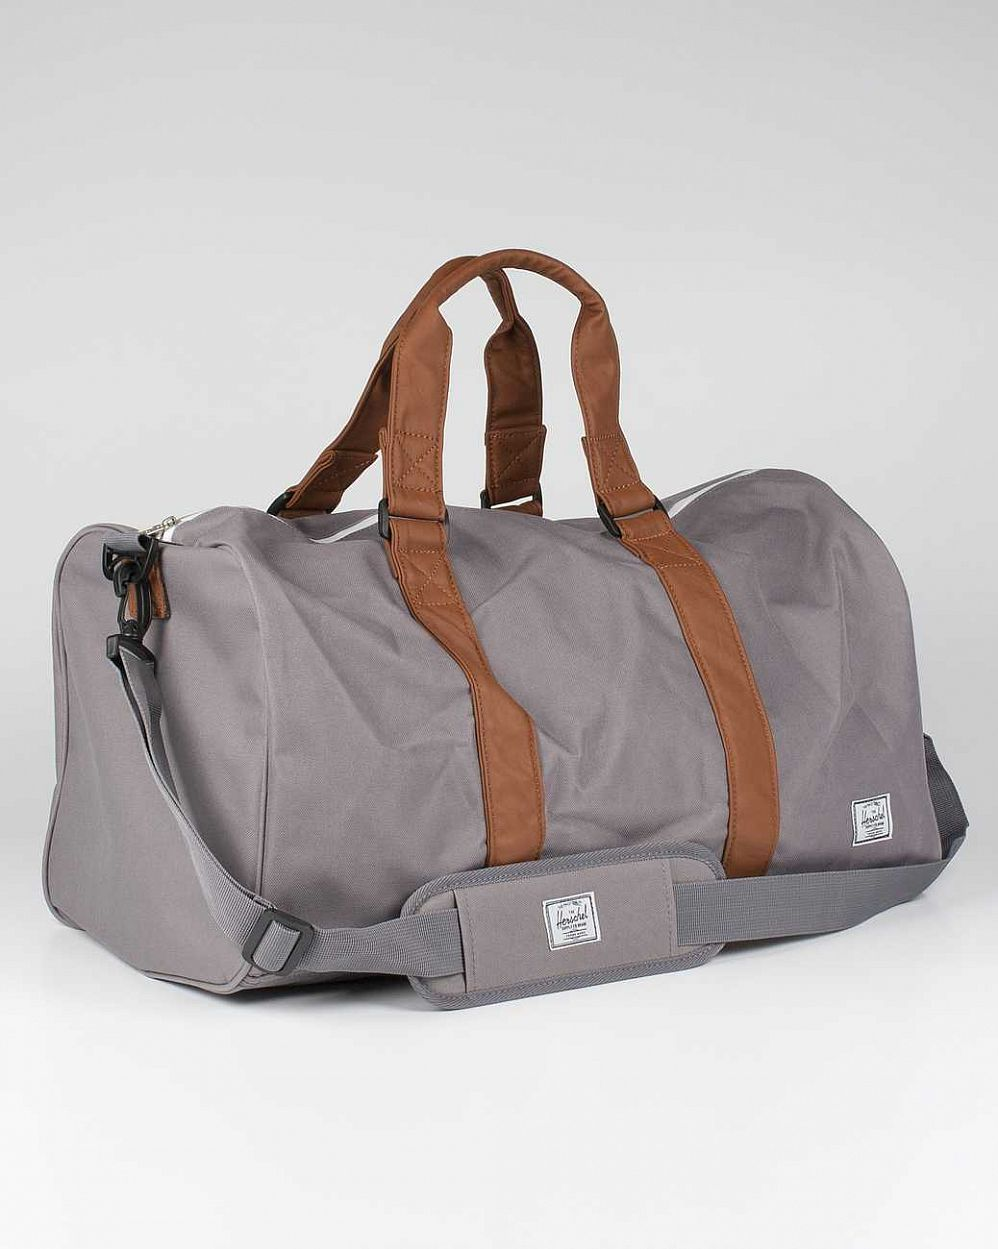 купить Cумка спортивная Herschel Ravine Grey Tan в Москве